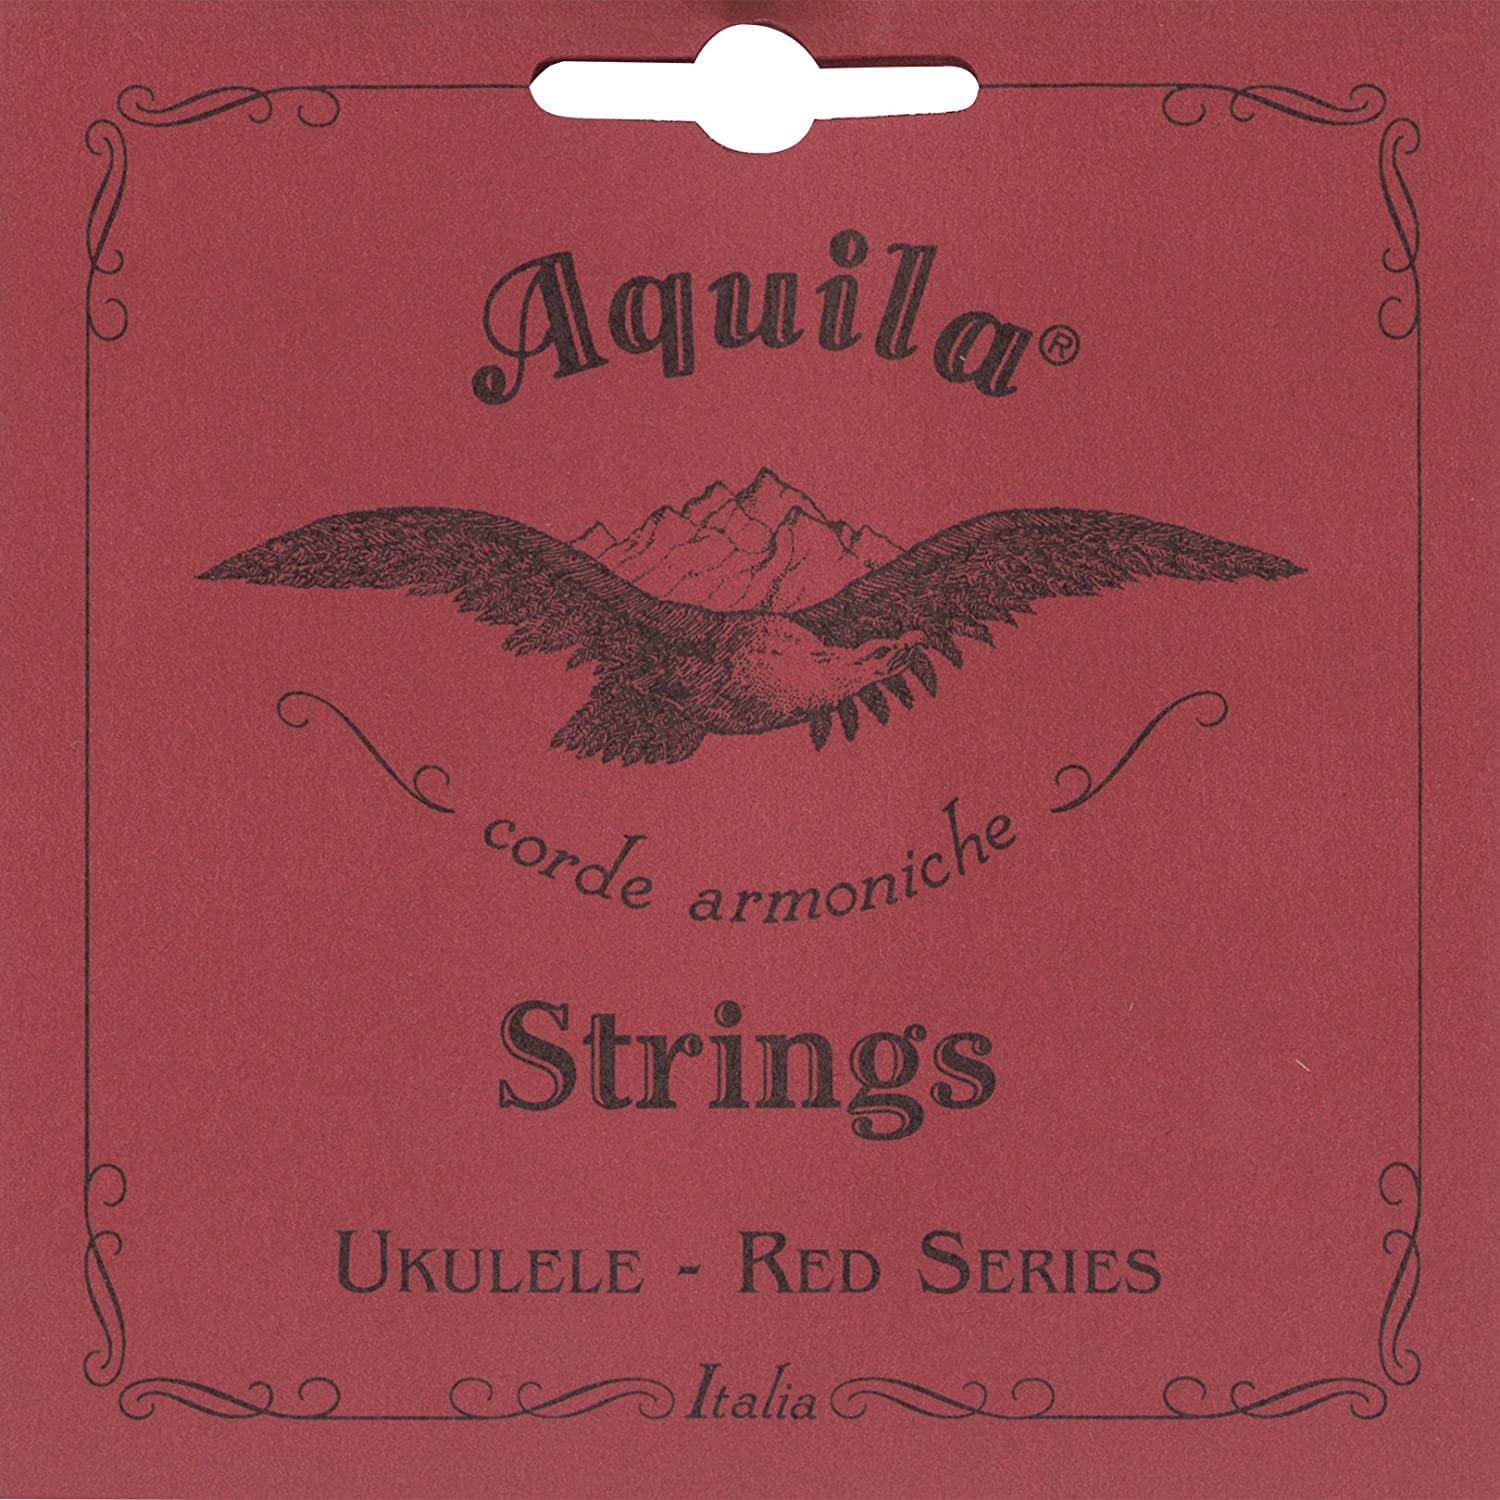 String Ukulele Aquila Red Series Soprano 4th String Low G 70U